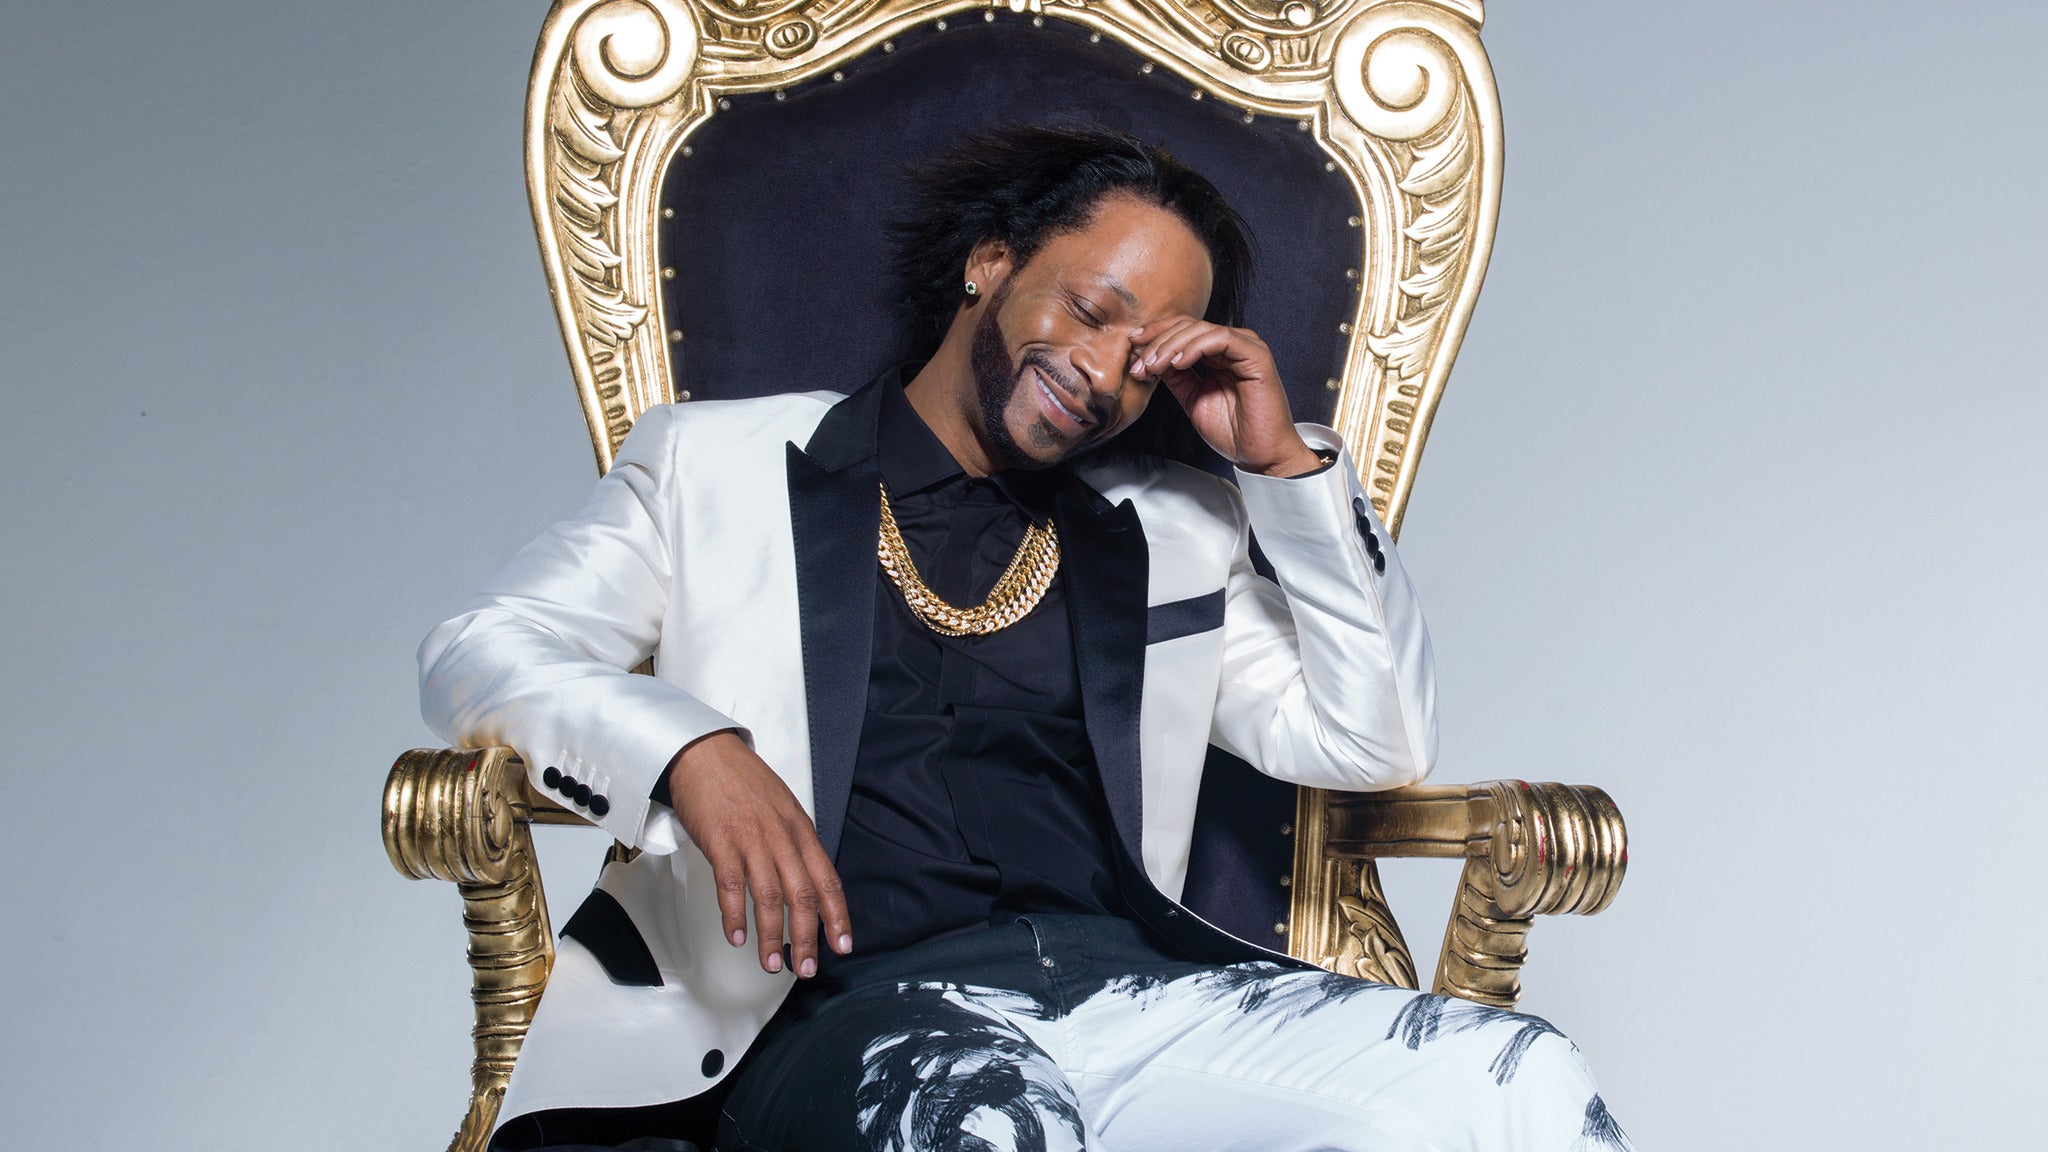 Katt Williams: Great America Tour at Verizon Arena